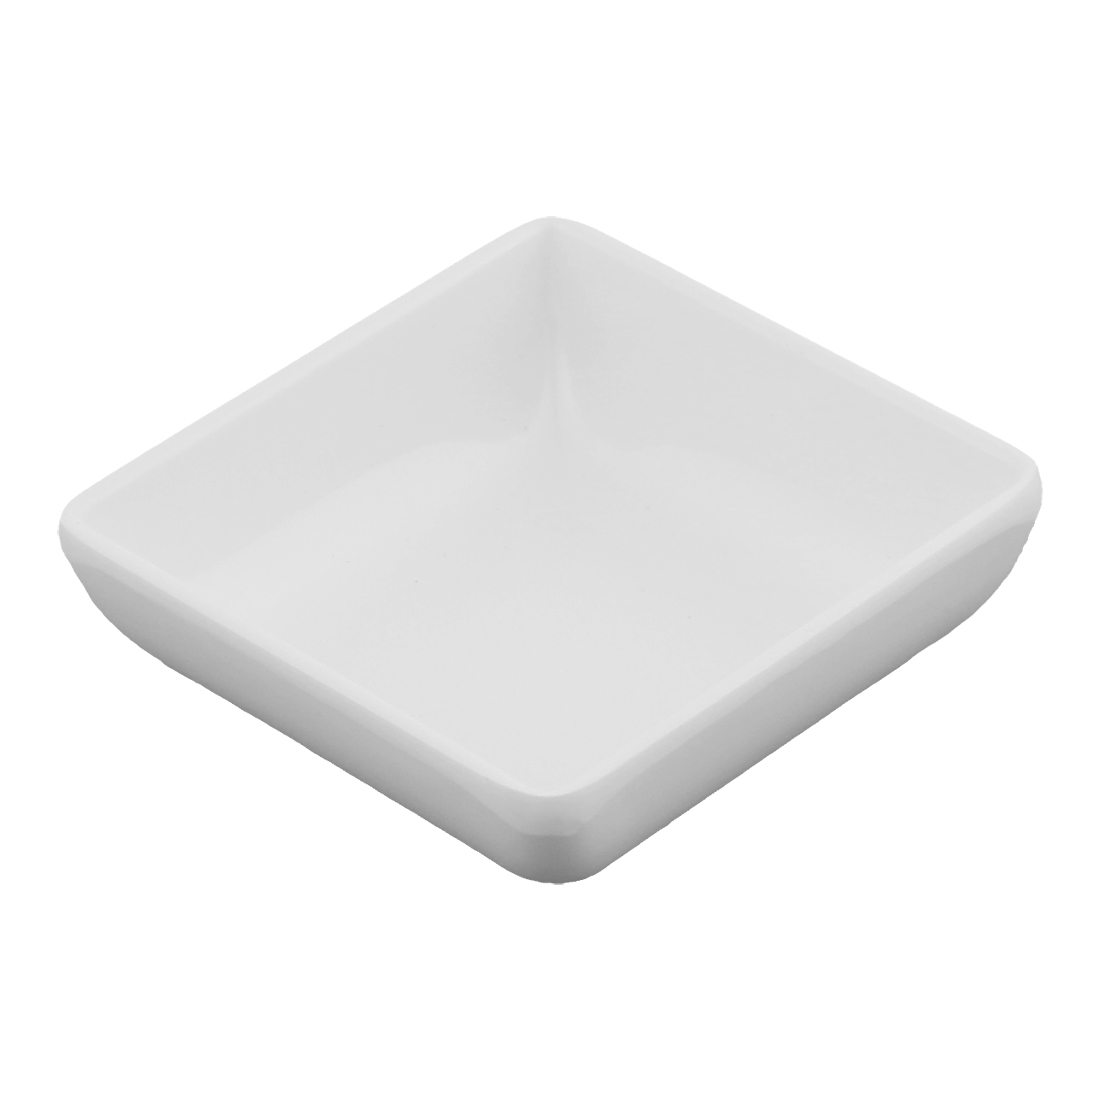 Square Shape Soy Sauce Wasabi Dipping Dish Plate